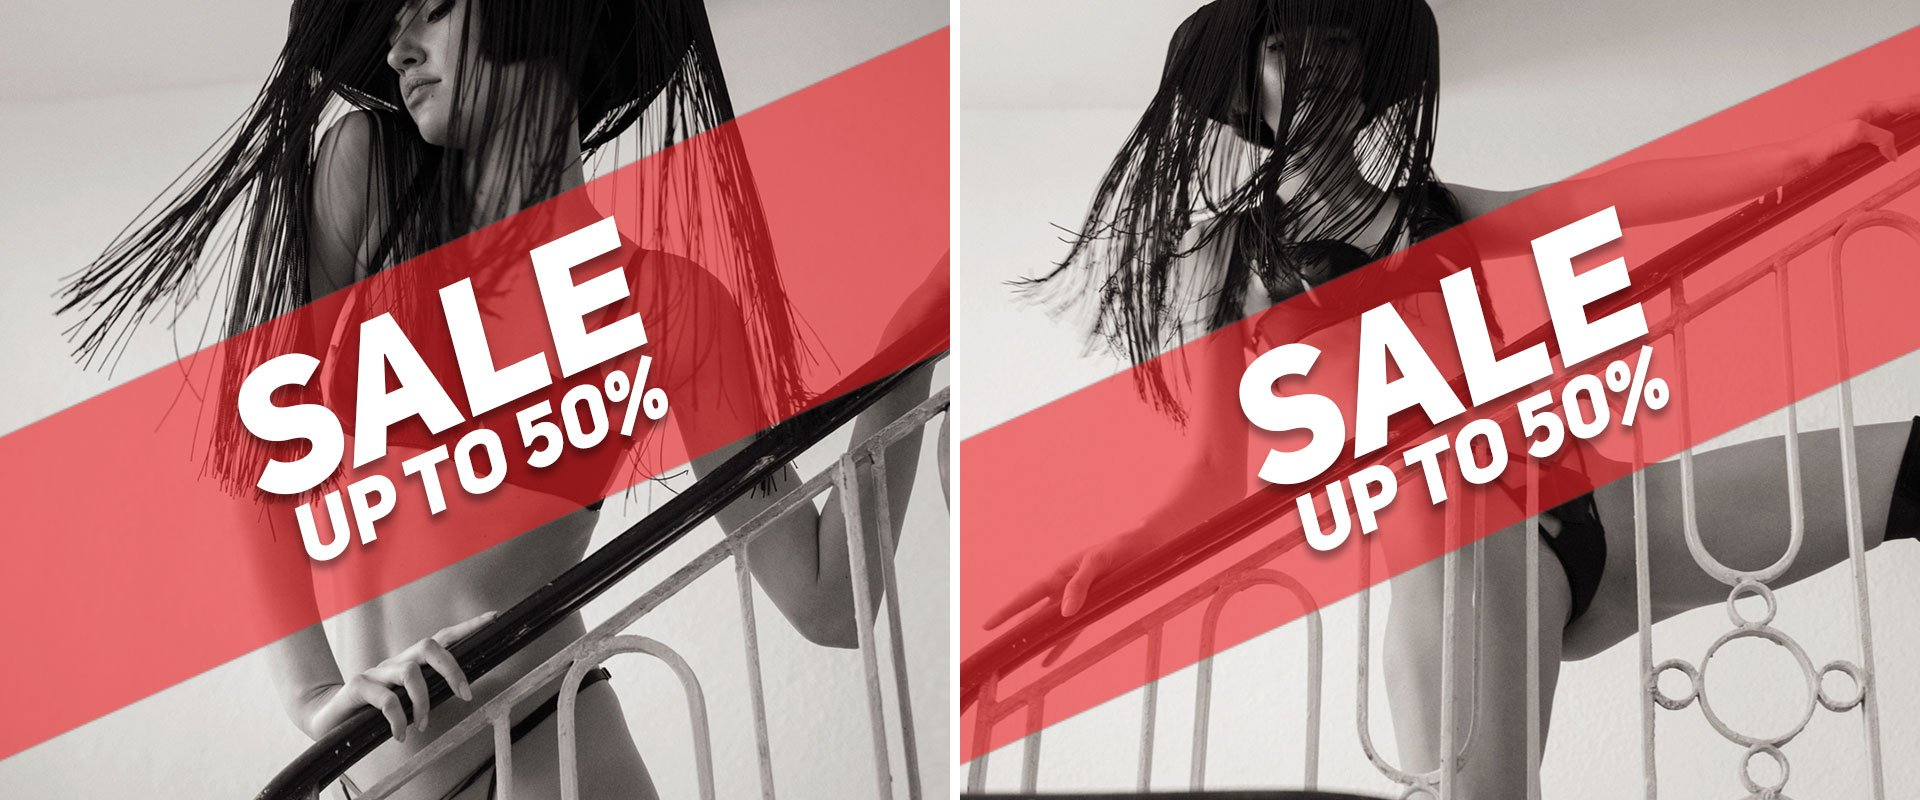 SALE Up to 50% I Ludique.ro